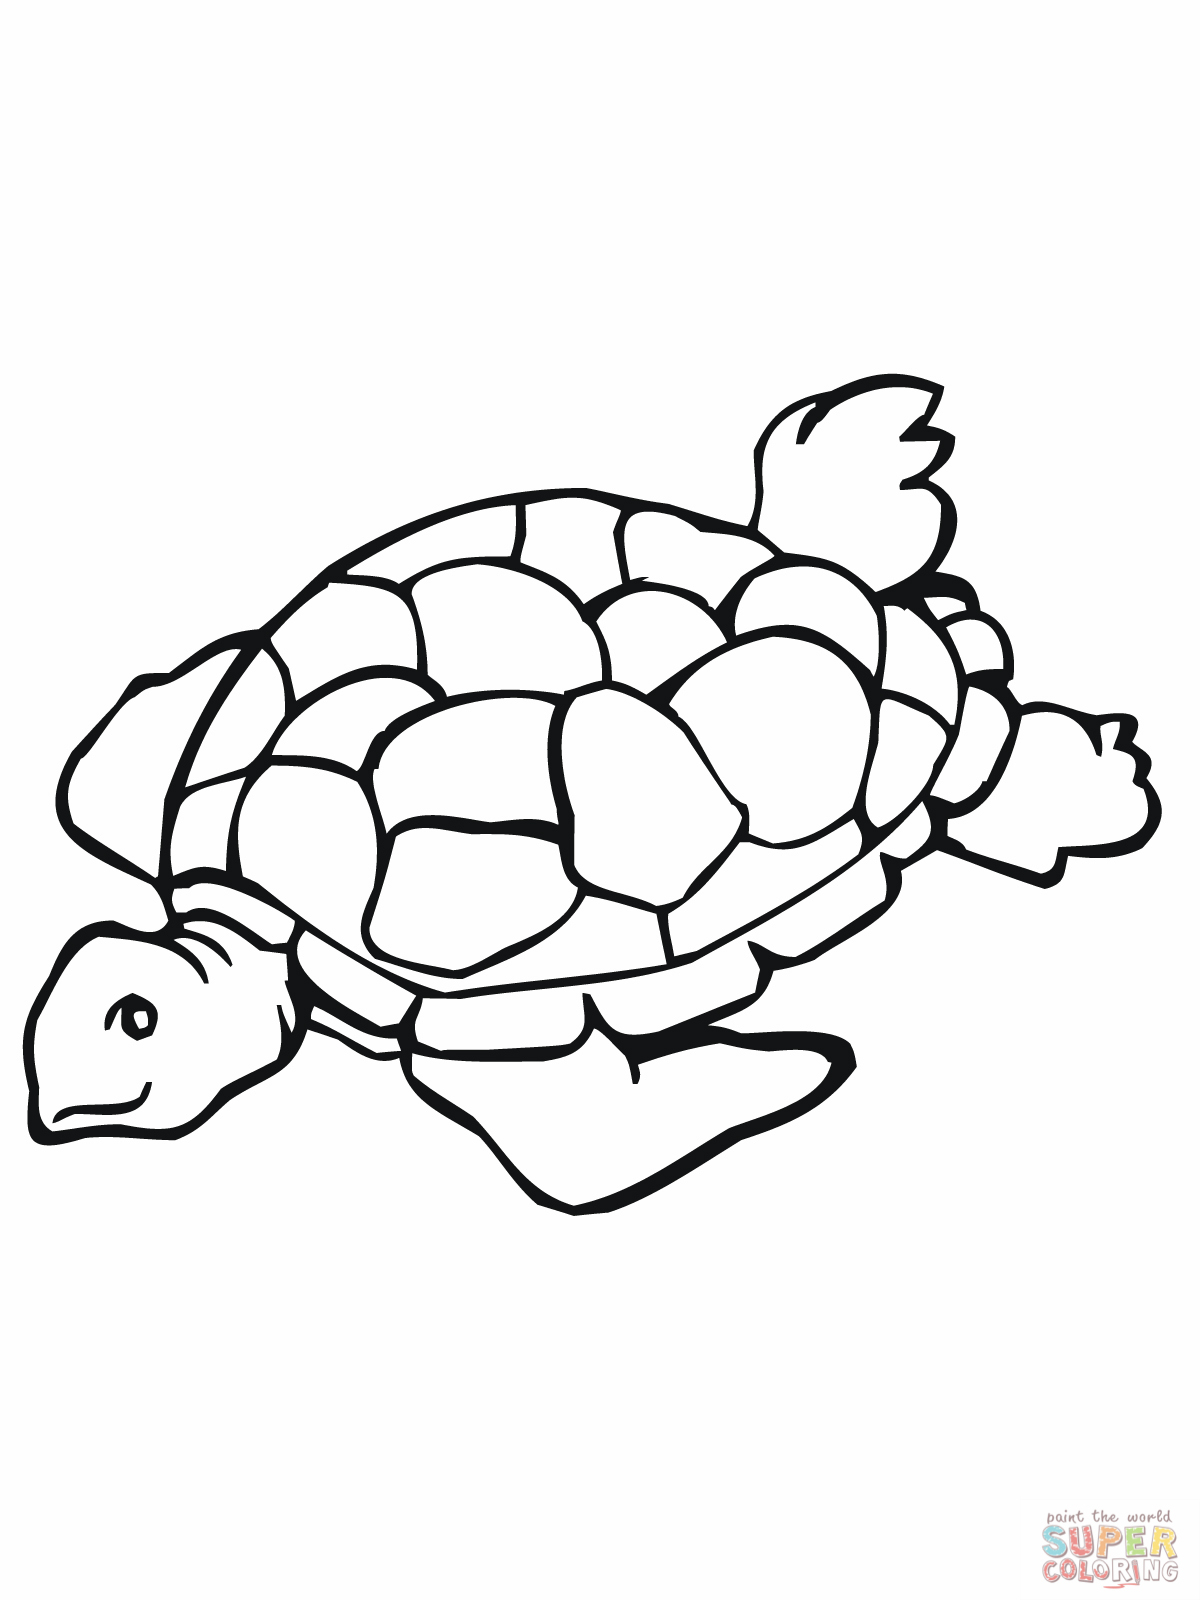 Sea Turtle Black And White Clipart - Clipart Suggest